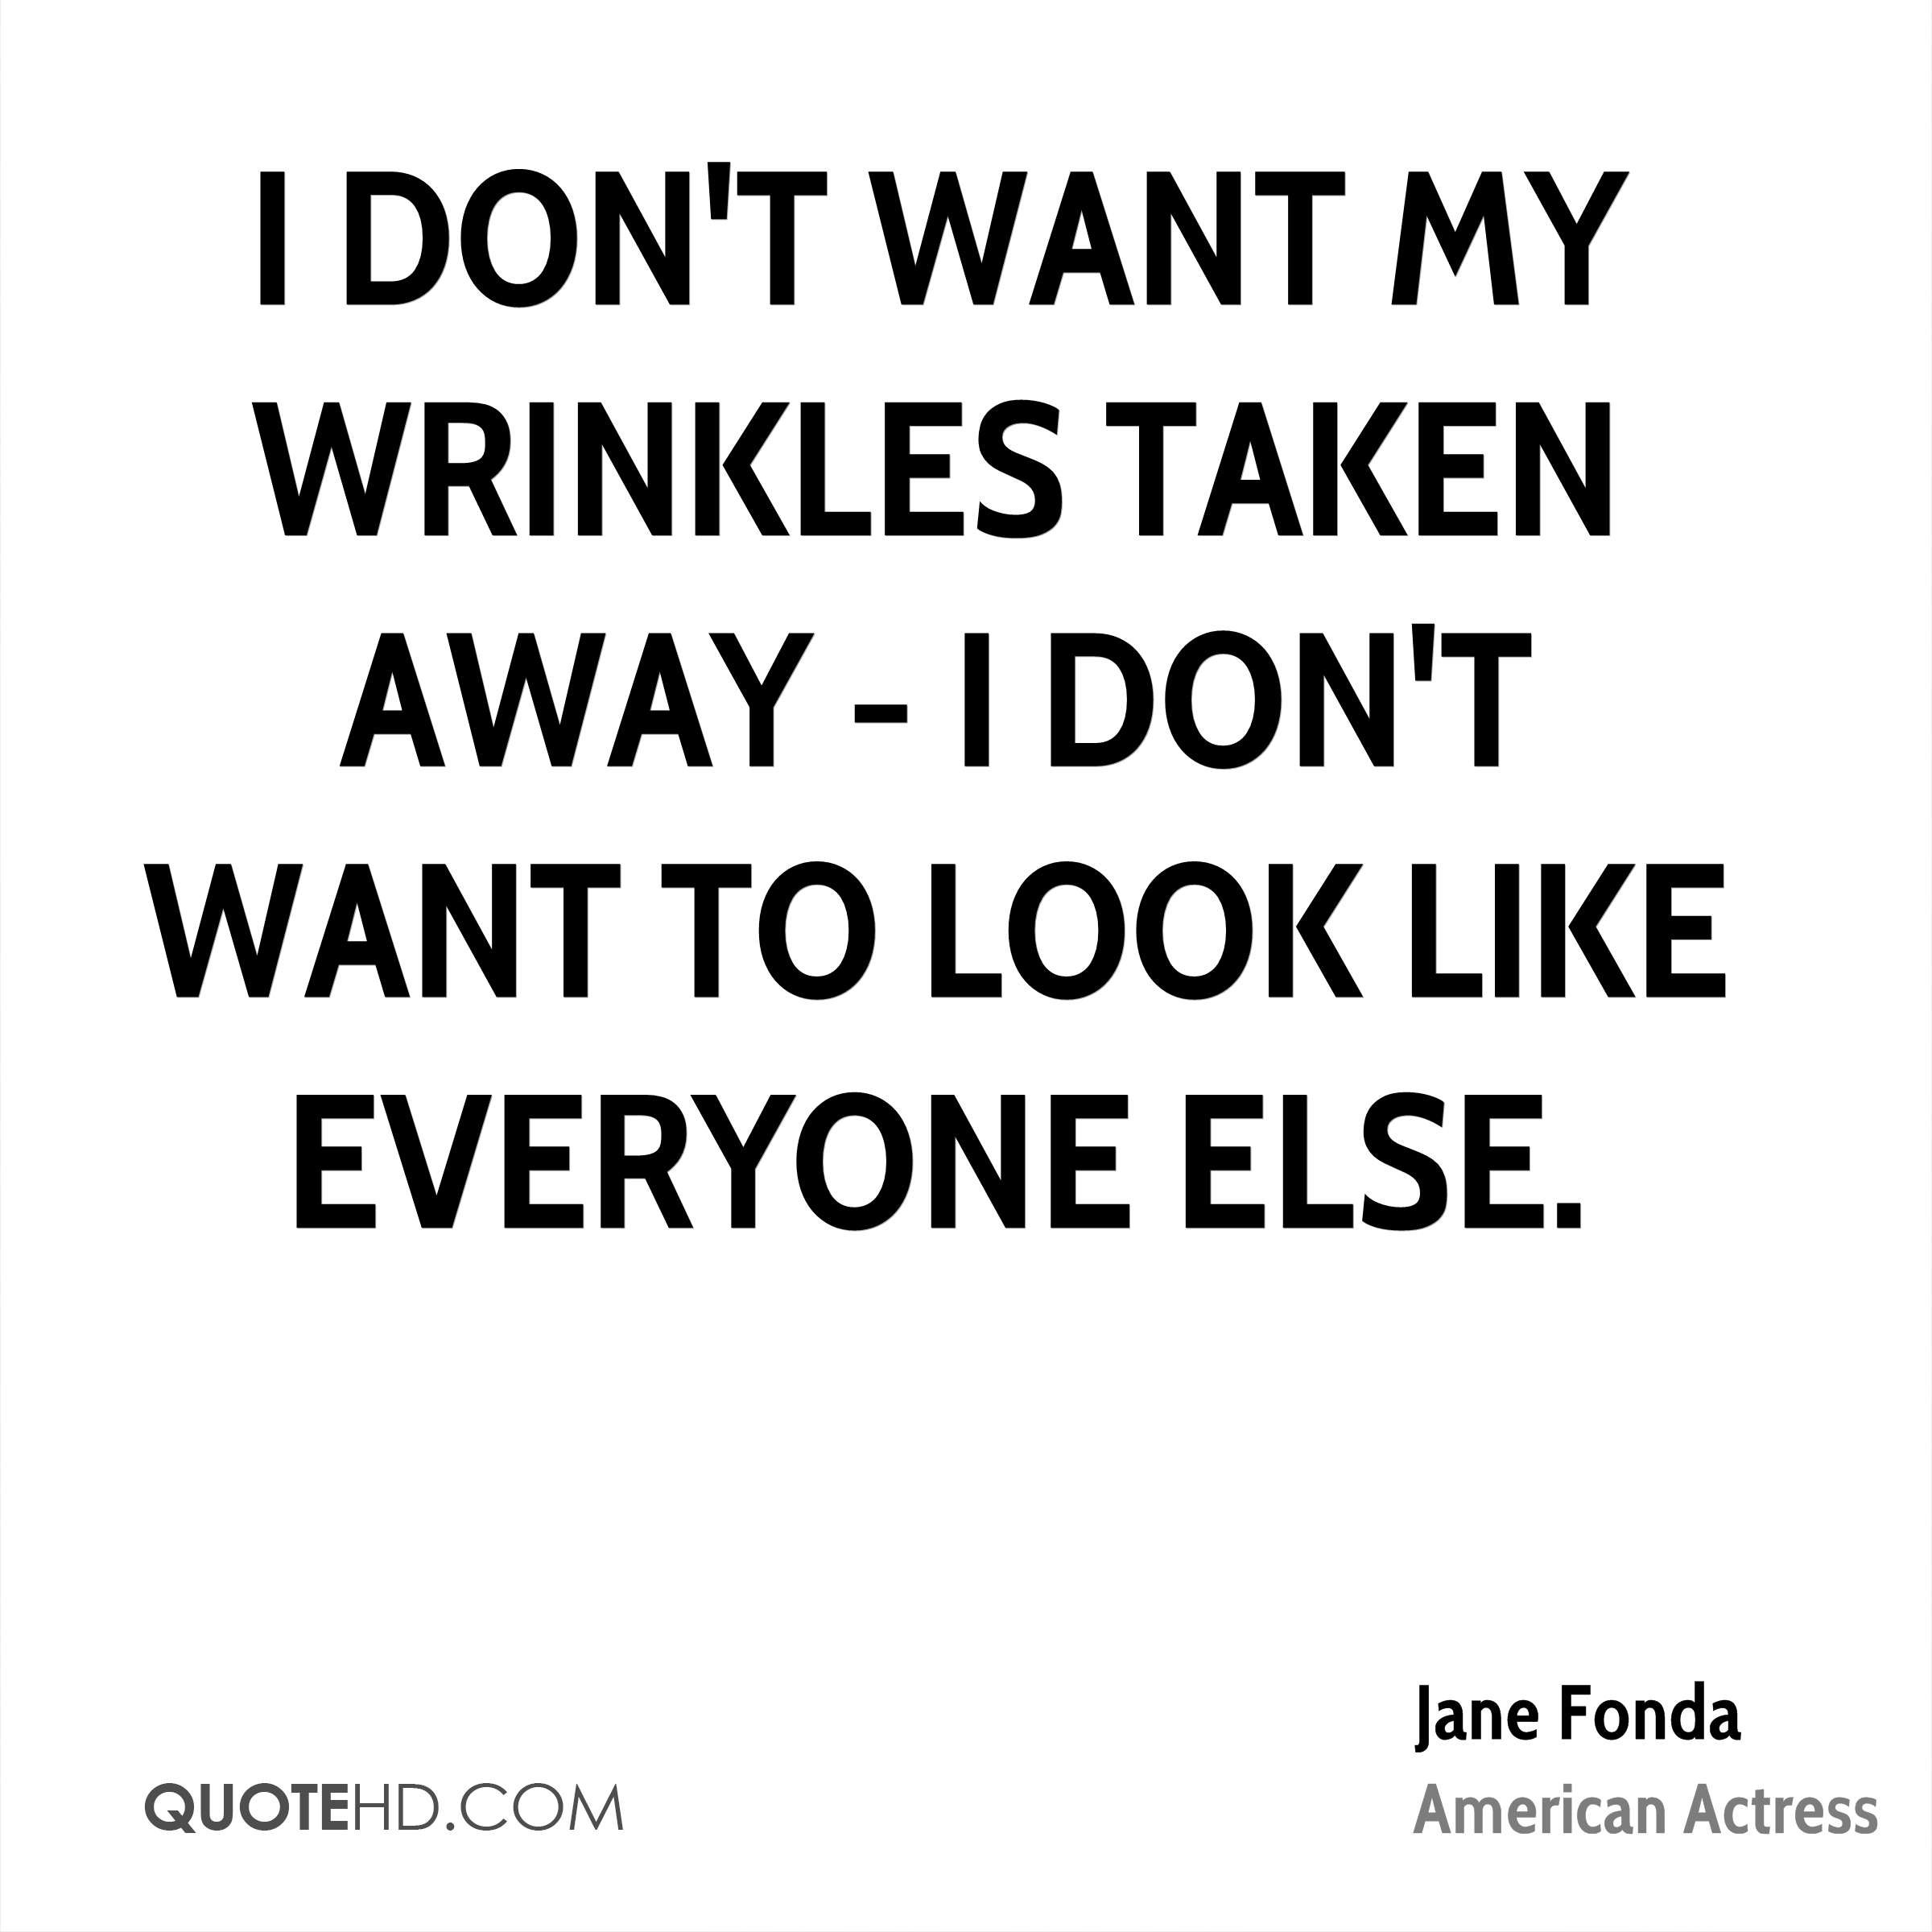 I don't want my wrinkles taken away - I don't want to look like everyone else.